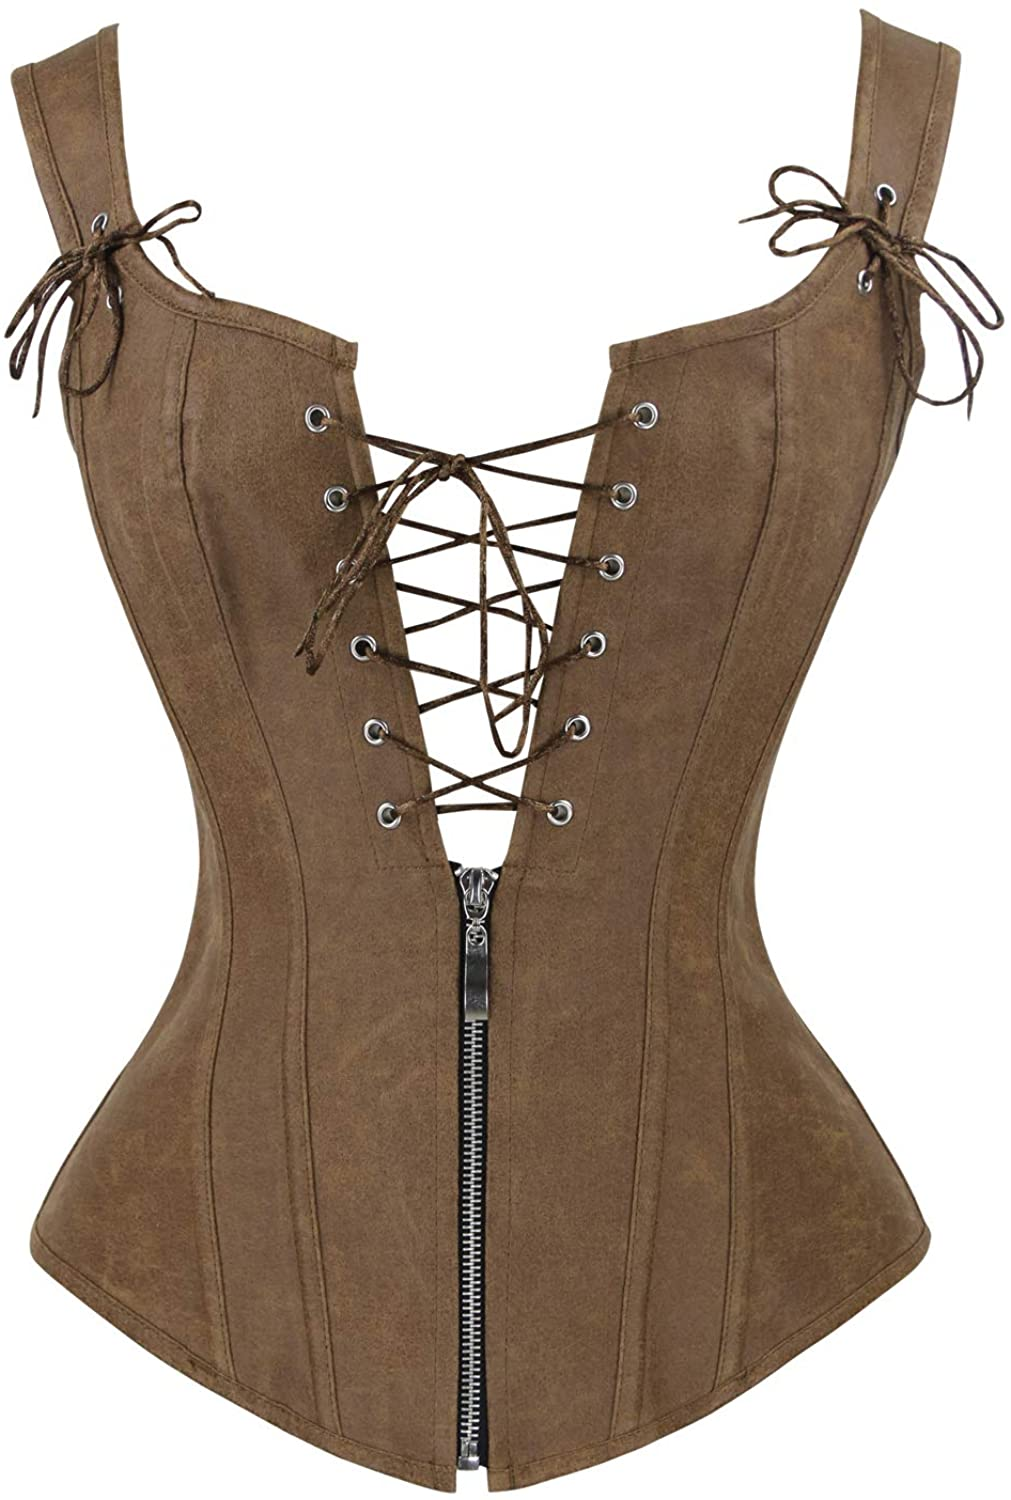 Charmian Women's Renaissance Lace Up Vintage Boned Bustier Corset with Garters at  Women's Clothing store